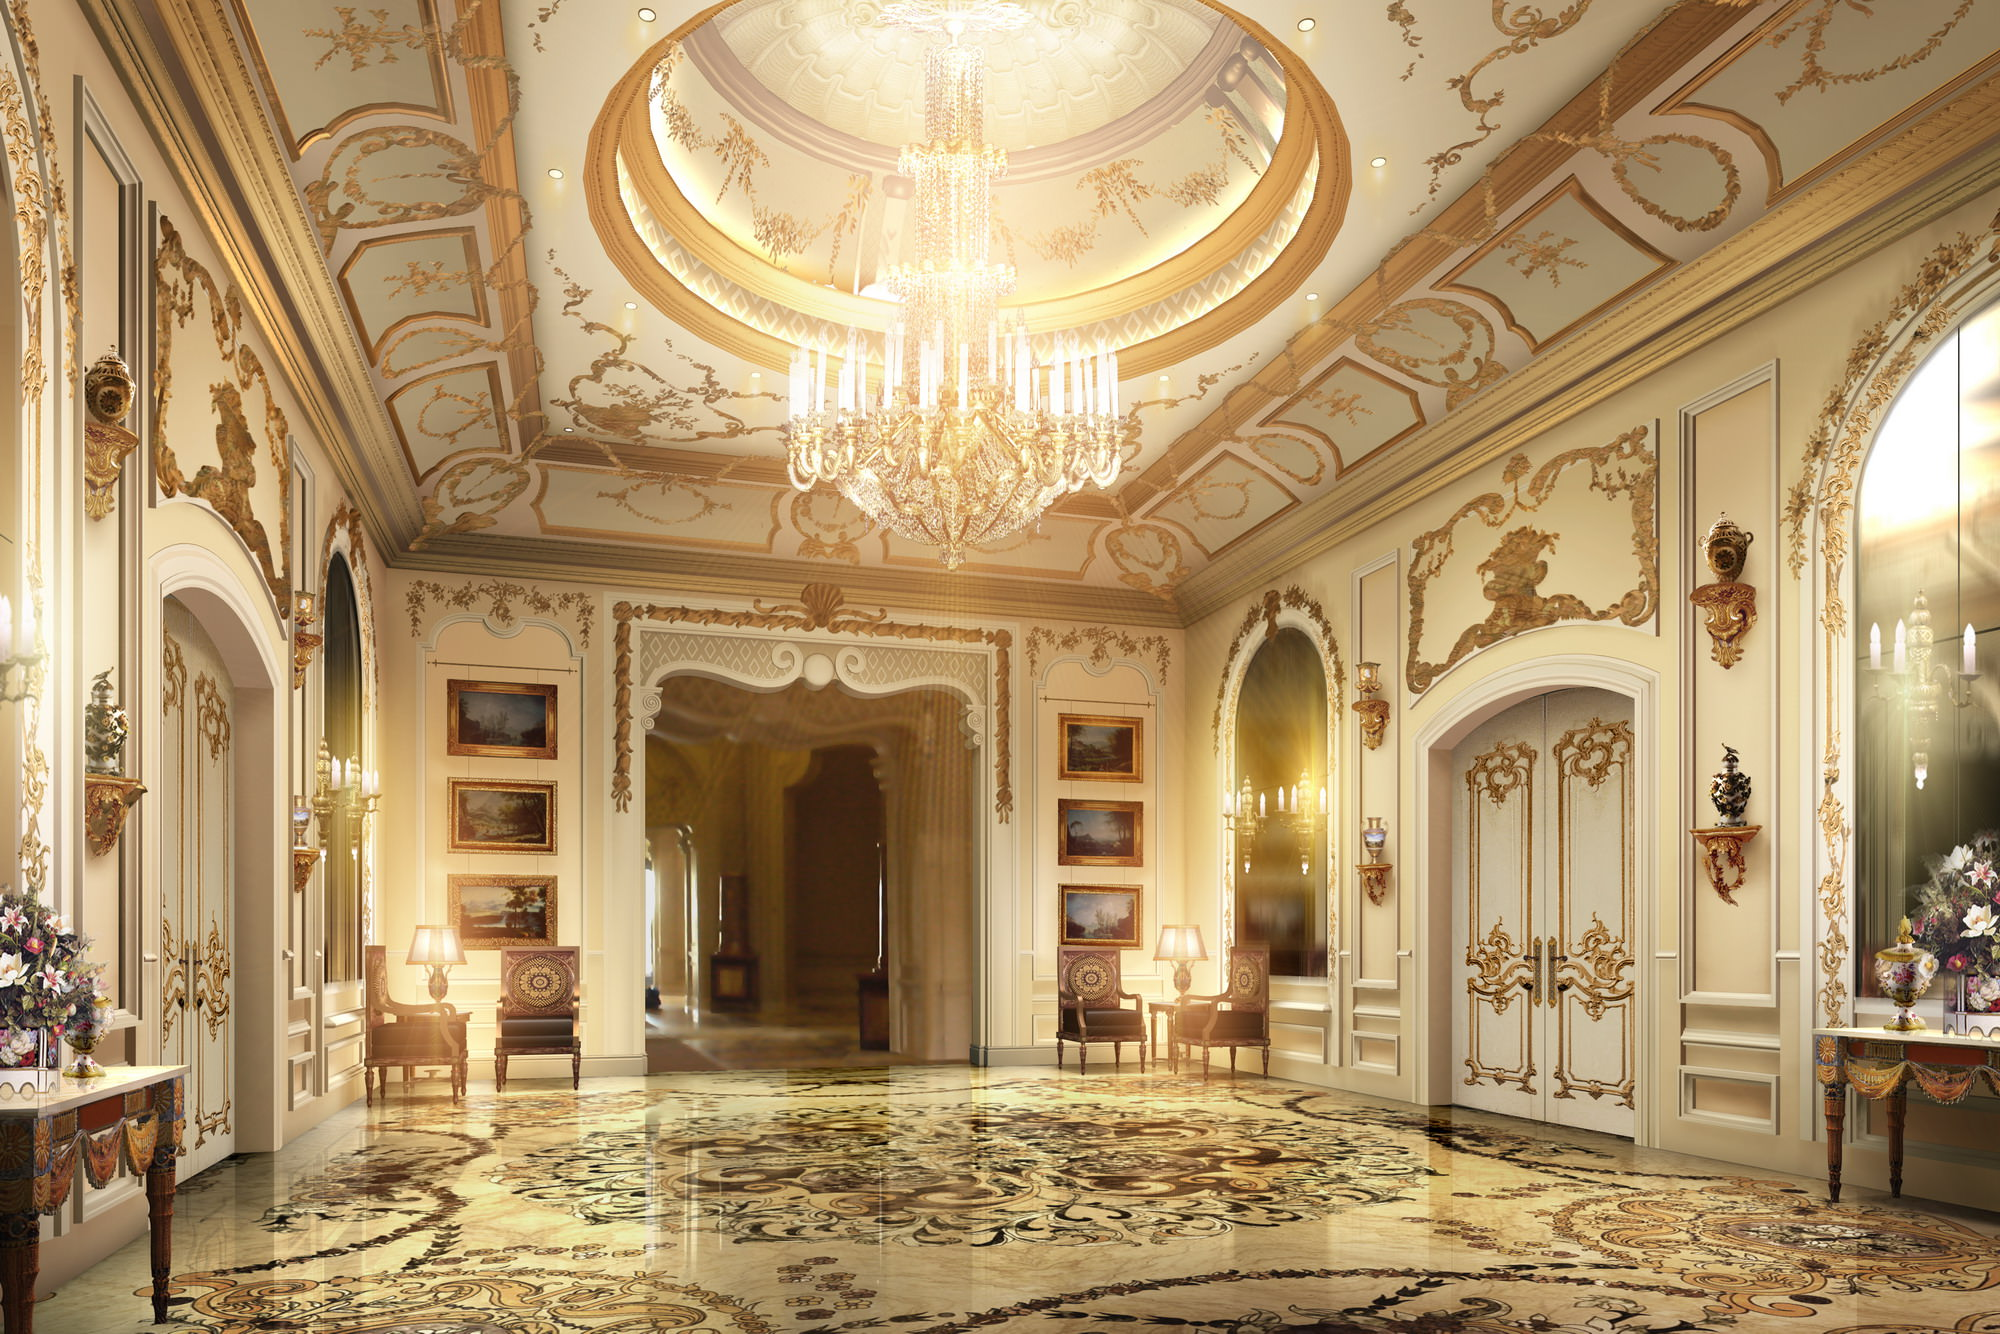 Lobby with luxury decor 3d model max 3ds for Decoration 3ds max